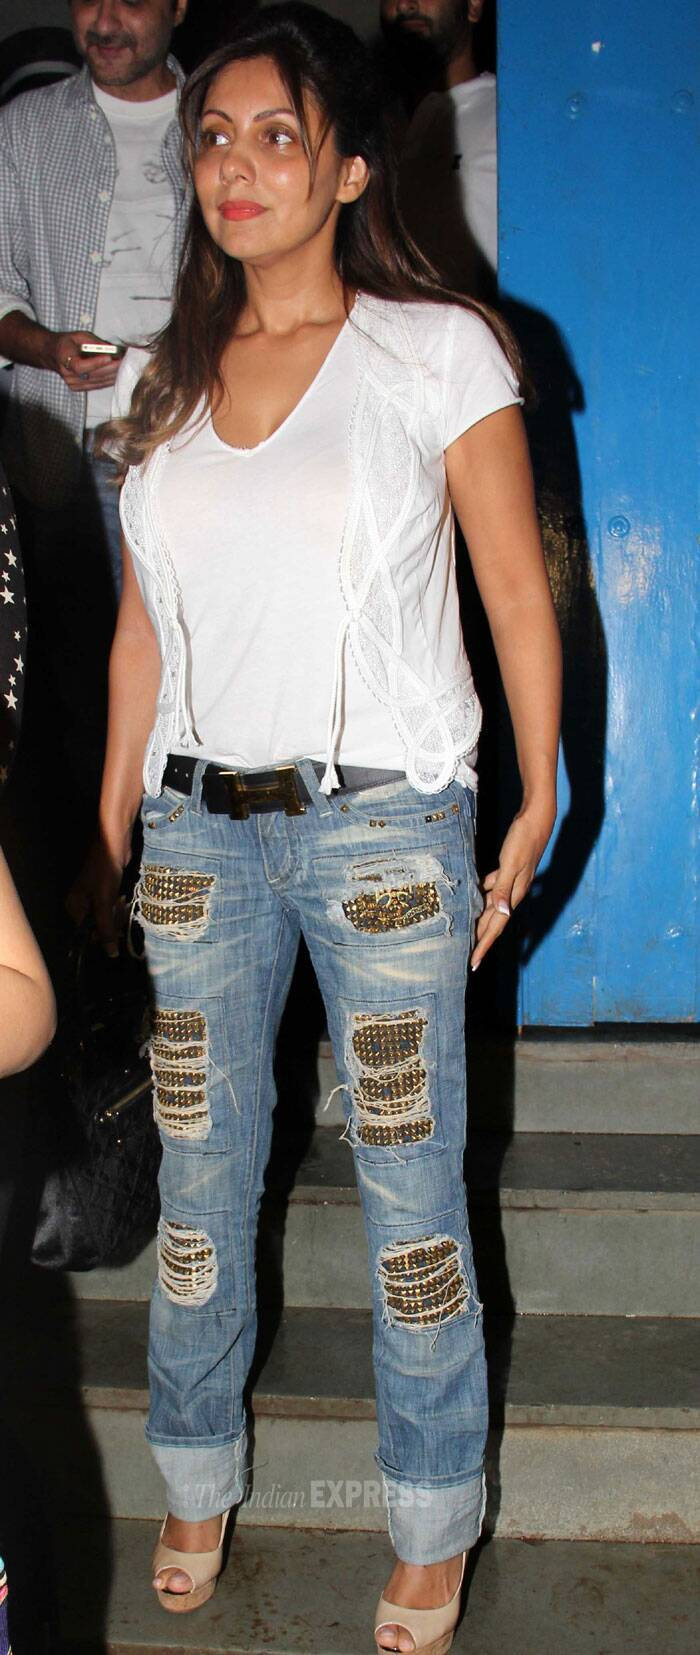 Gauri was casually dressed in denims by Robin's Jeans and white top. (Source: Varinder Chawla)